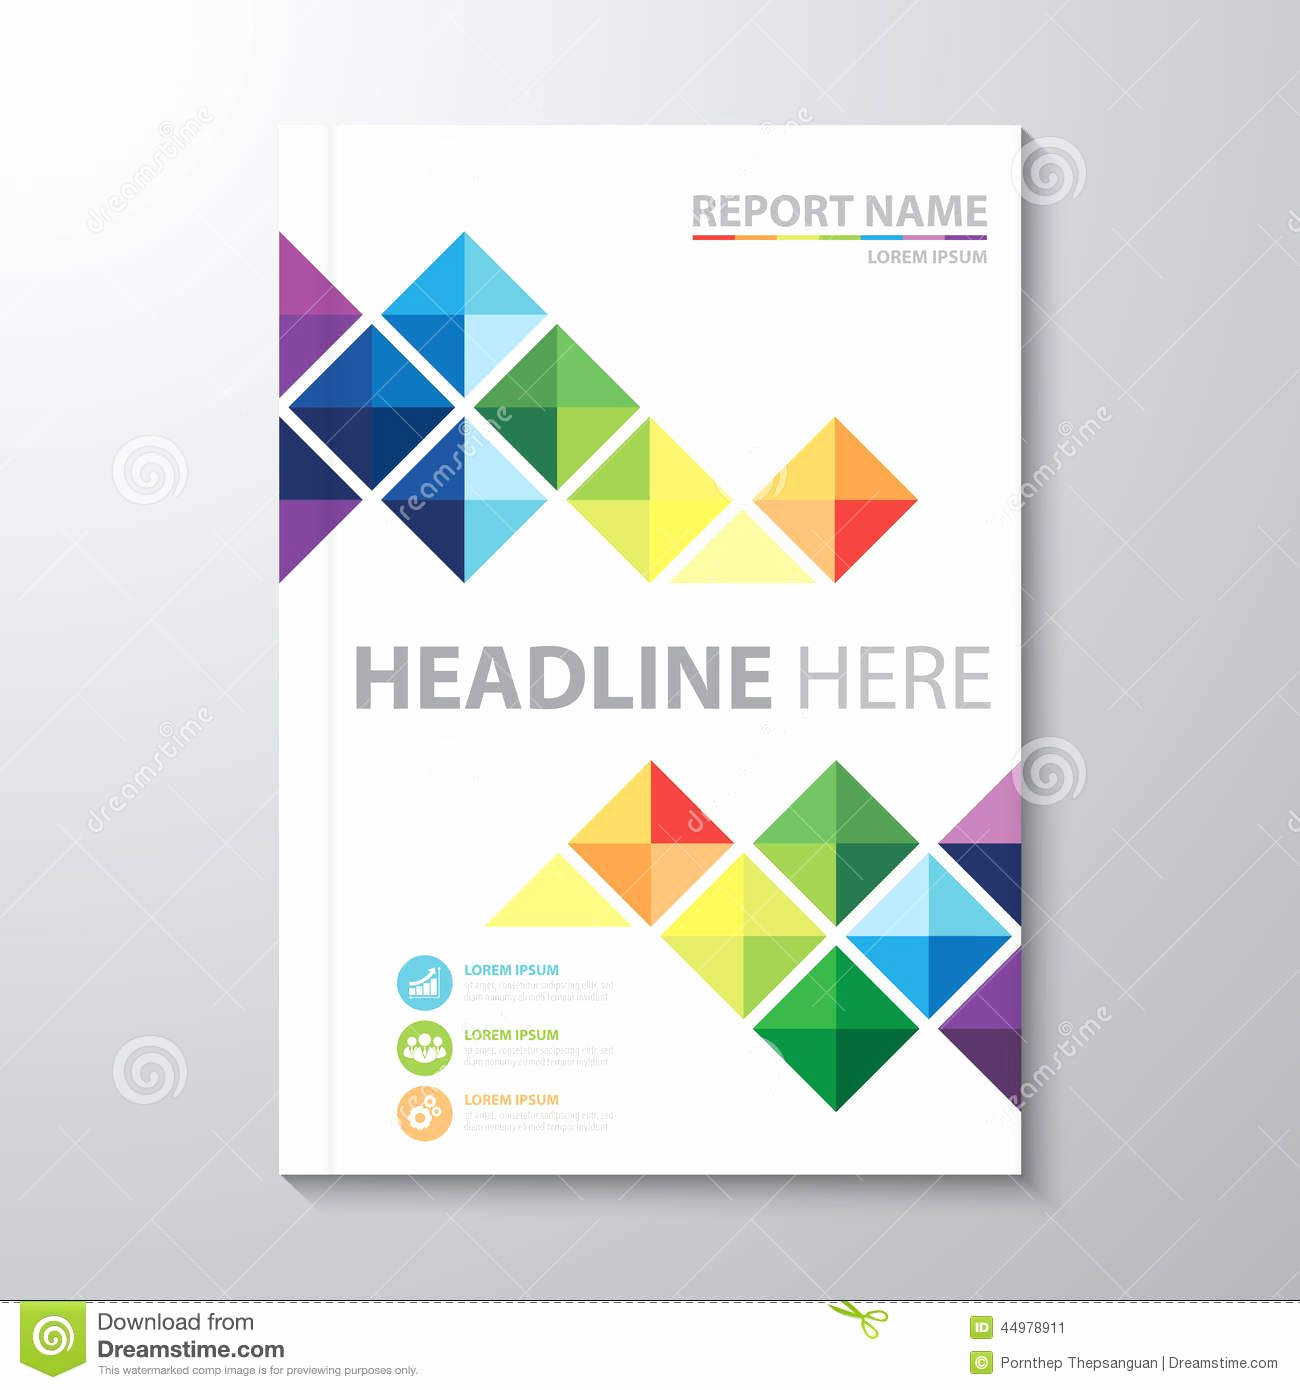 Cover Page Template Word Awesome Annual Report Cover Design Template Cover